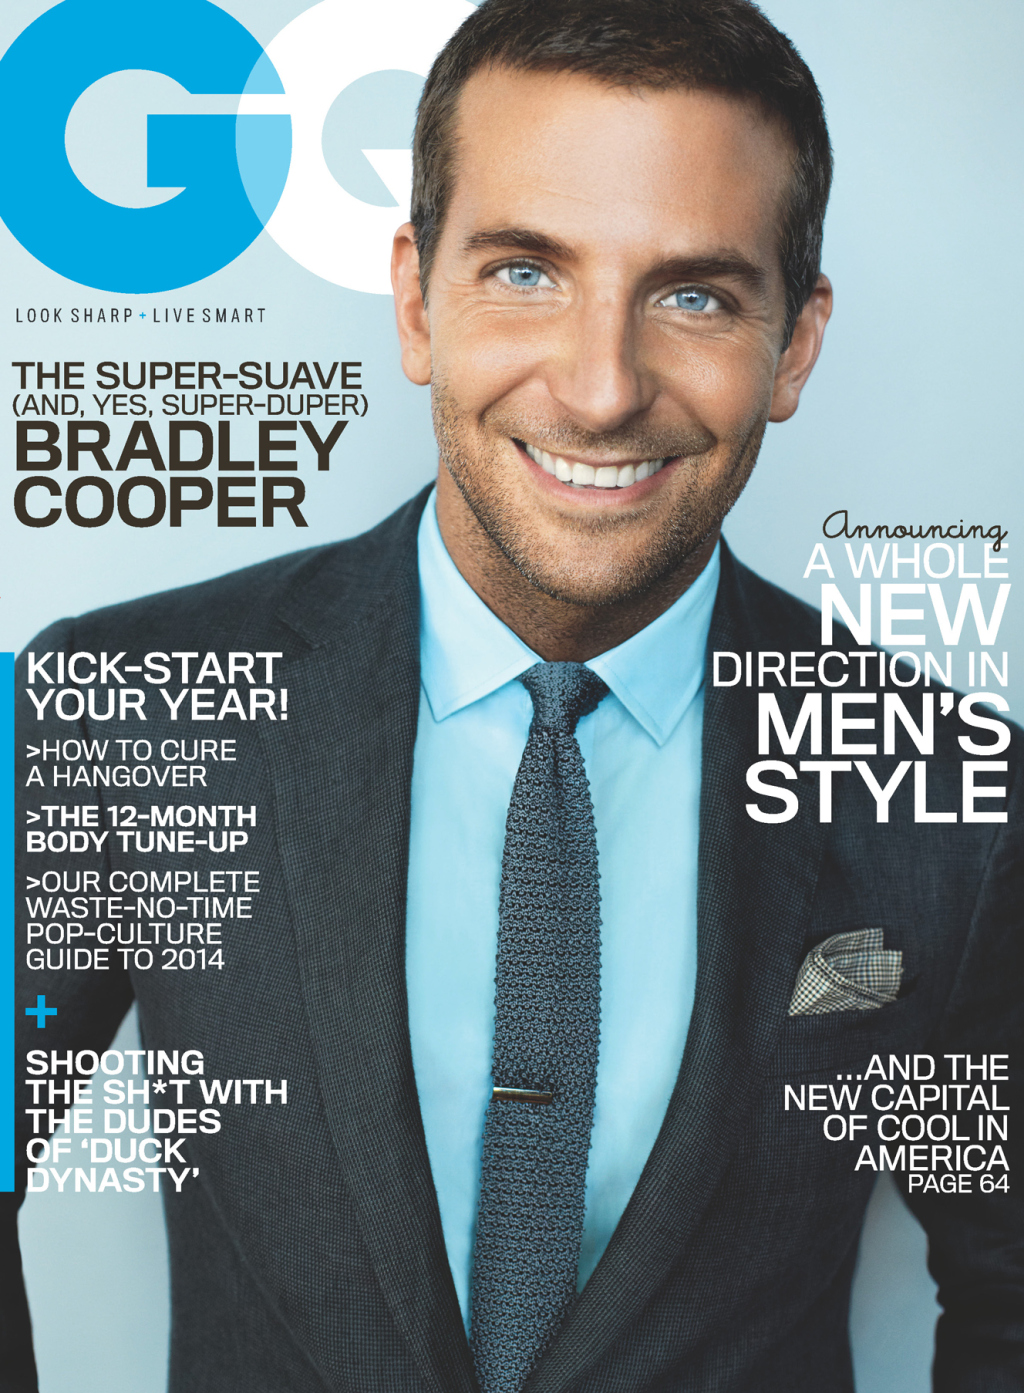 Gq Magazine The Secrets Of R Kelly: BRADLEY COOPER COVERS GQ MAGAZINE JANUARY COVER